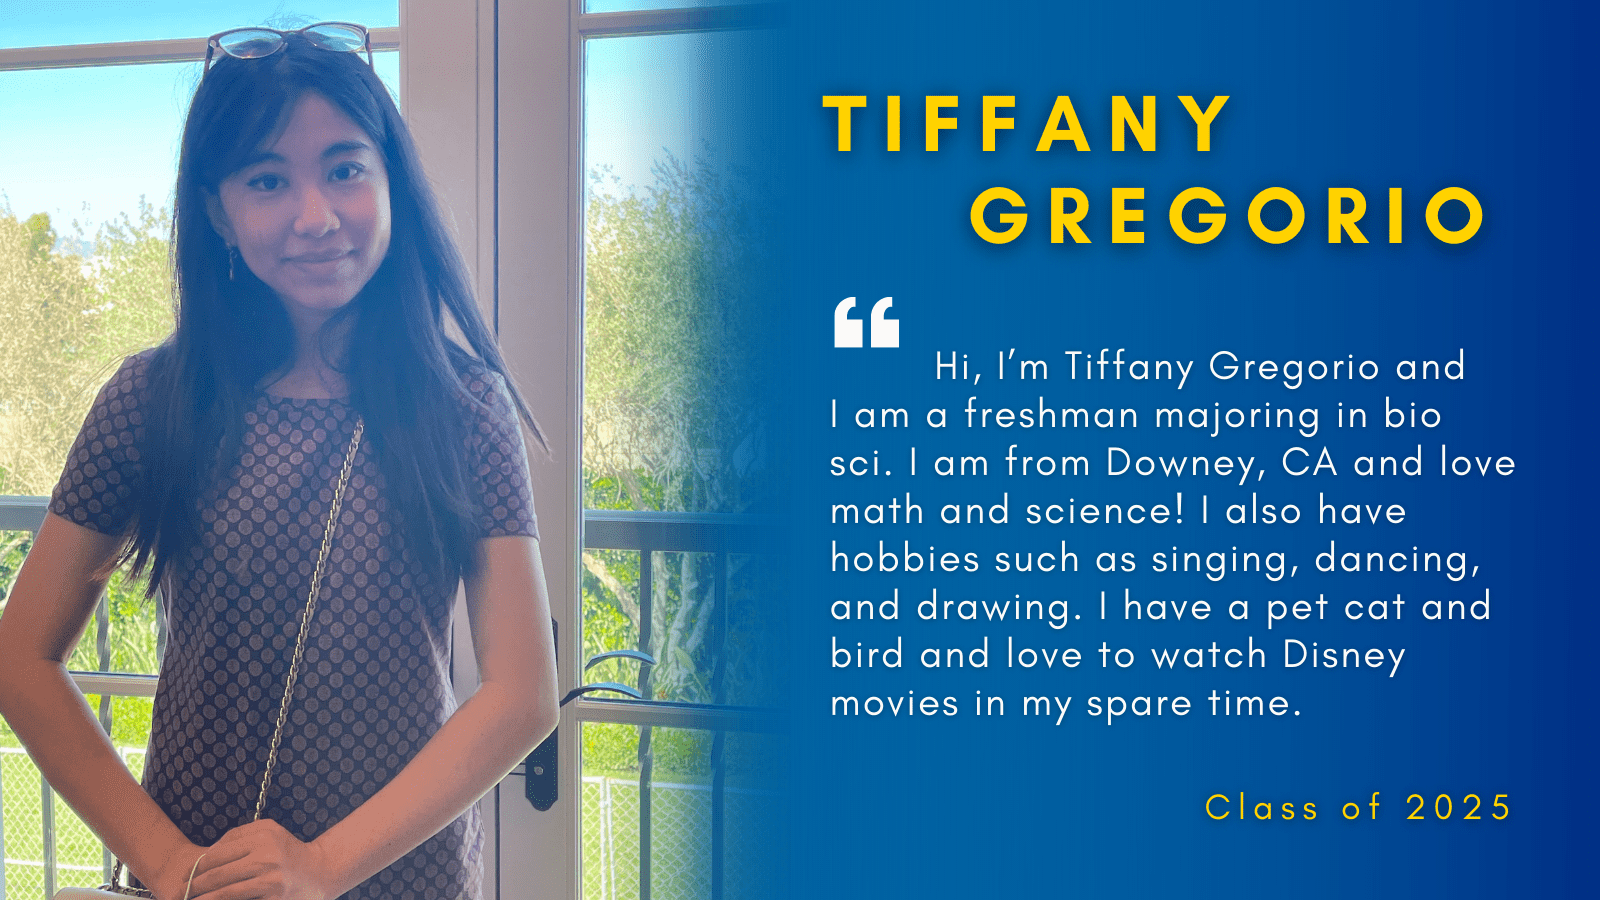 Image of Tiffany Gregorio with her quote.